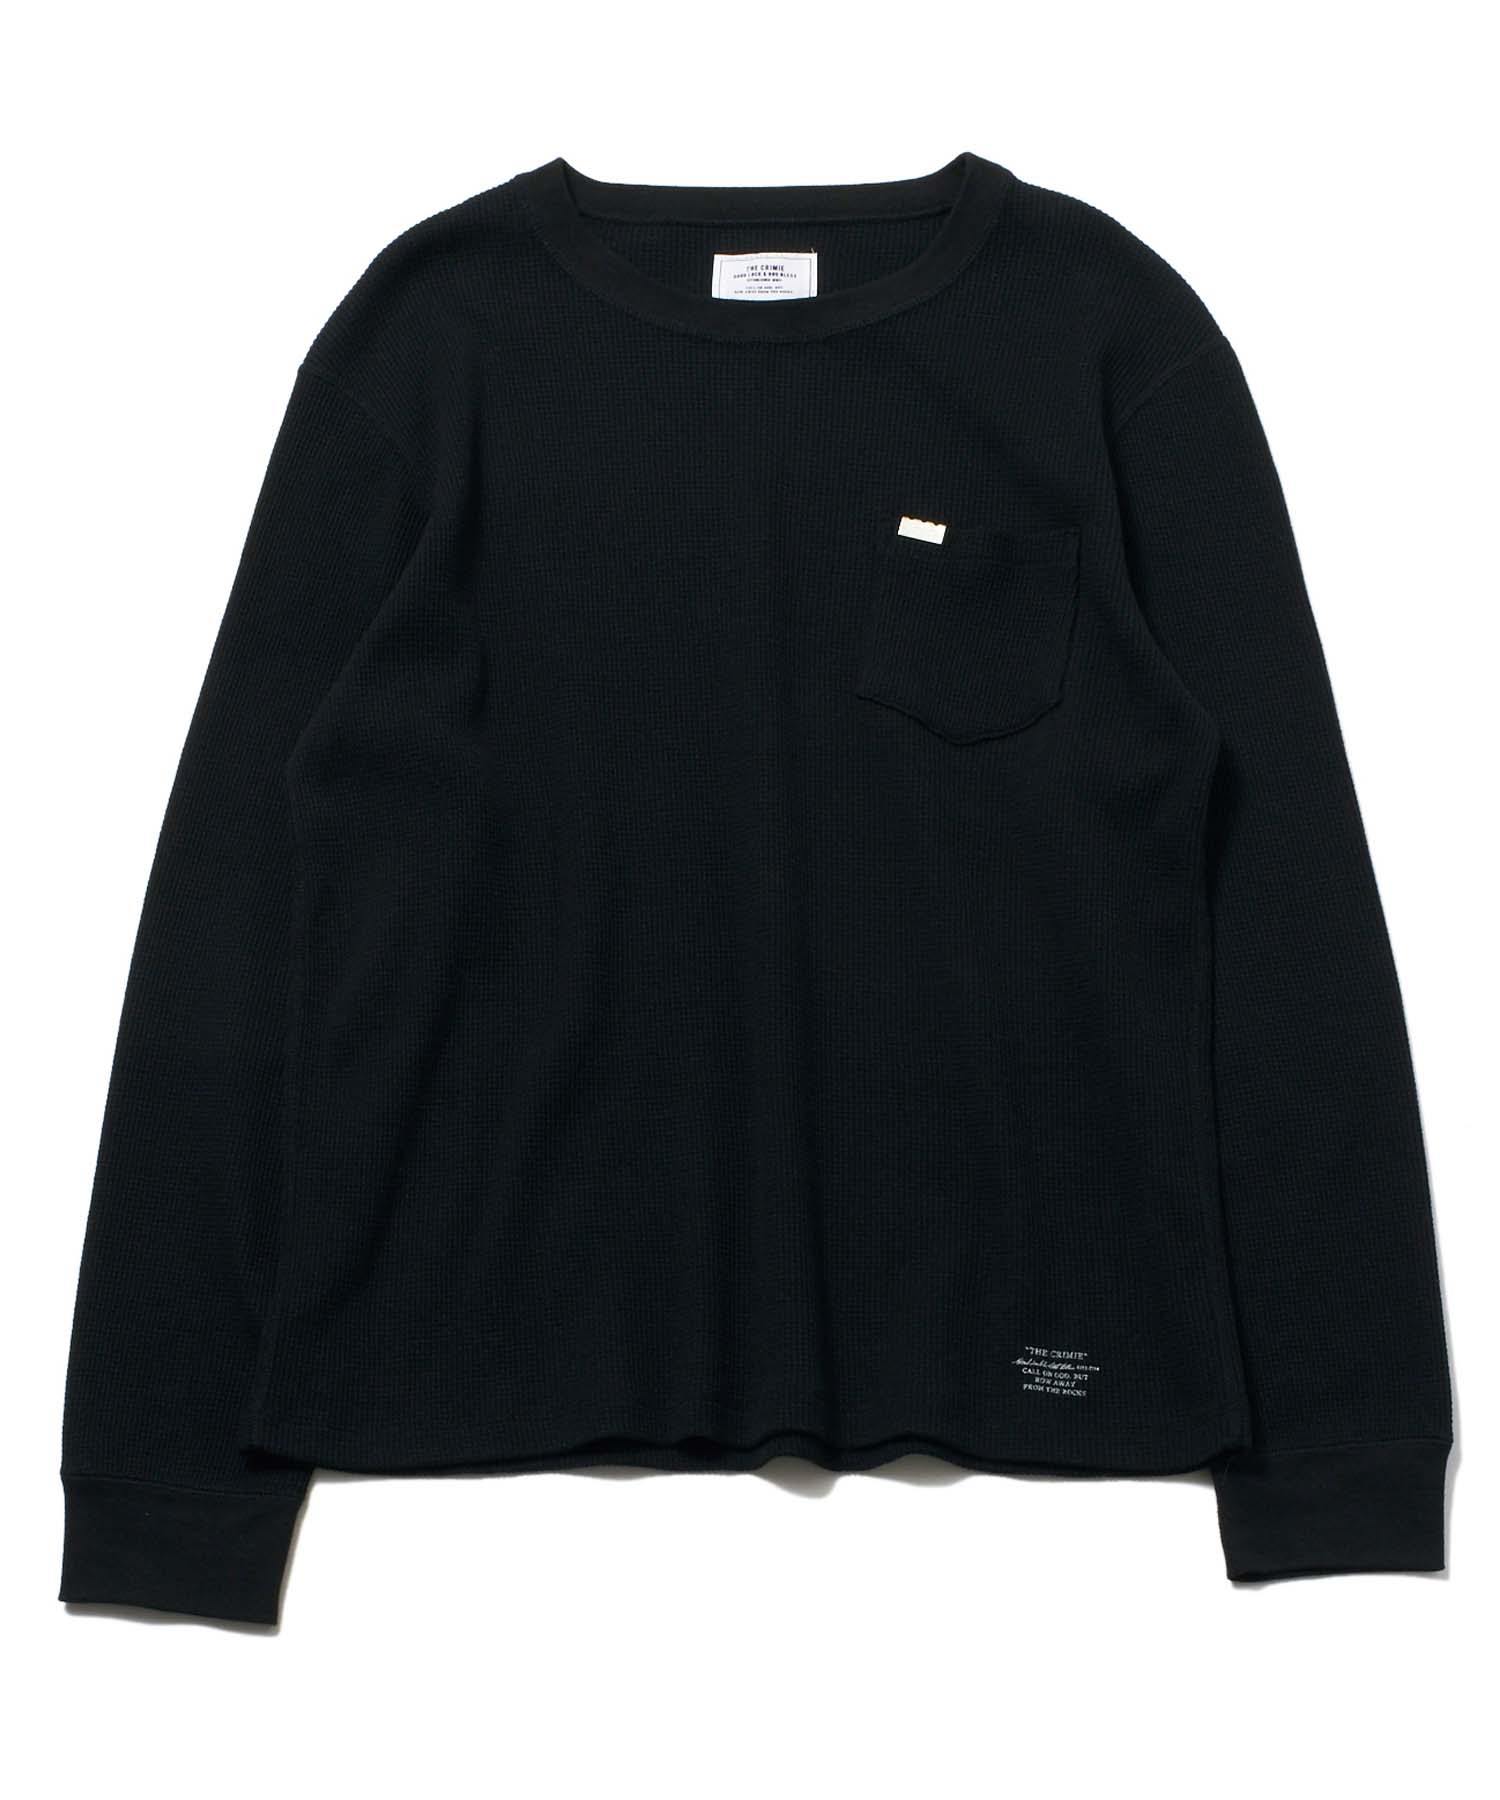 【CRIMIE(クライミー)】VINCENT THERMAL LONG SLEEVE TEE ロングスリーブT(CR1-02L5-CL02)